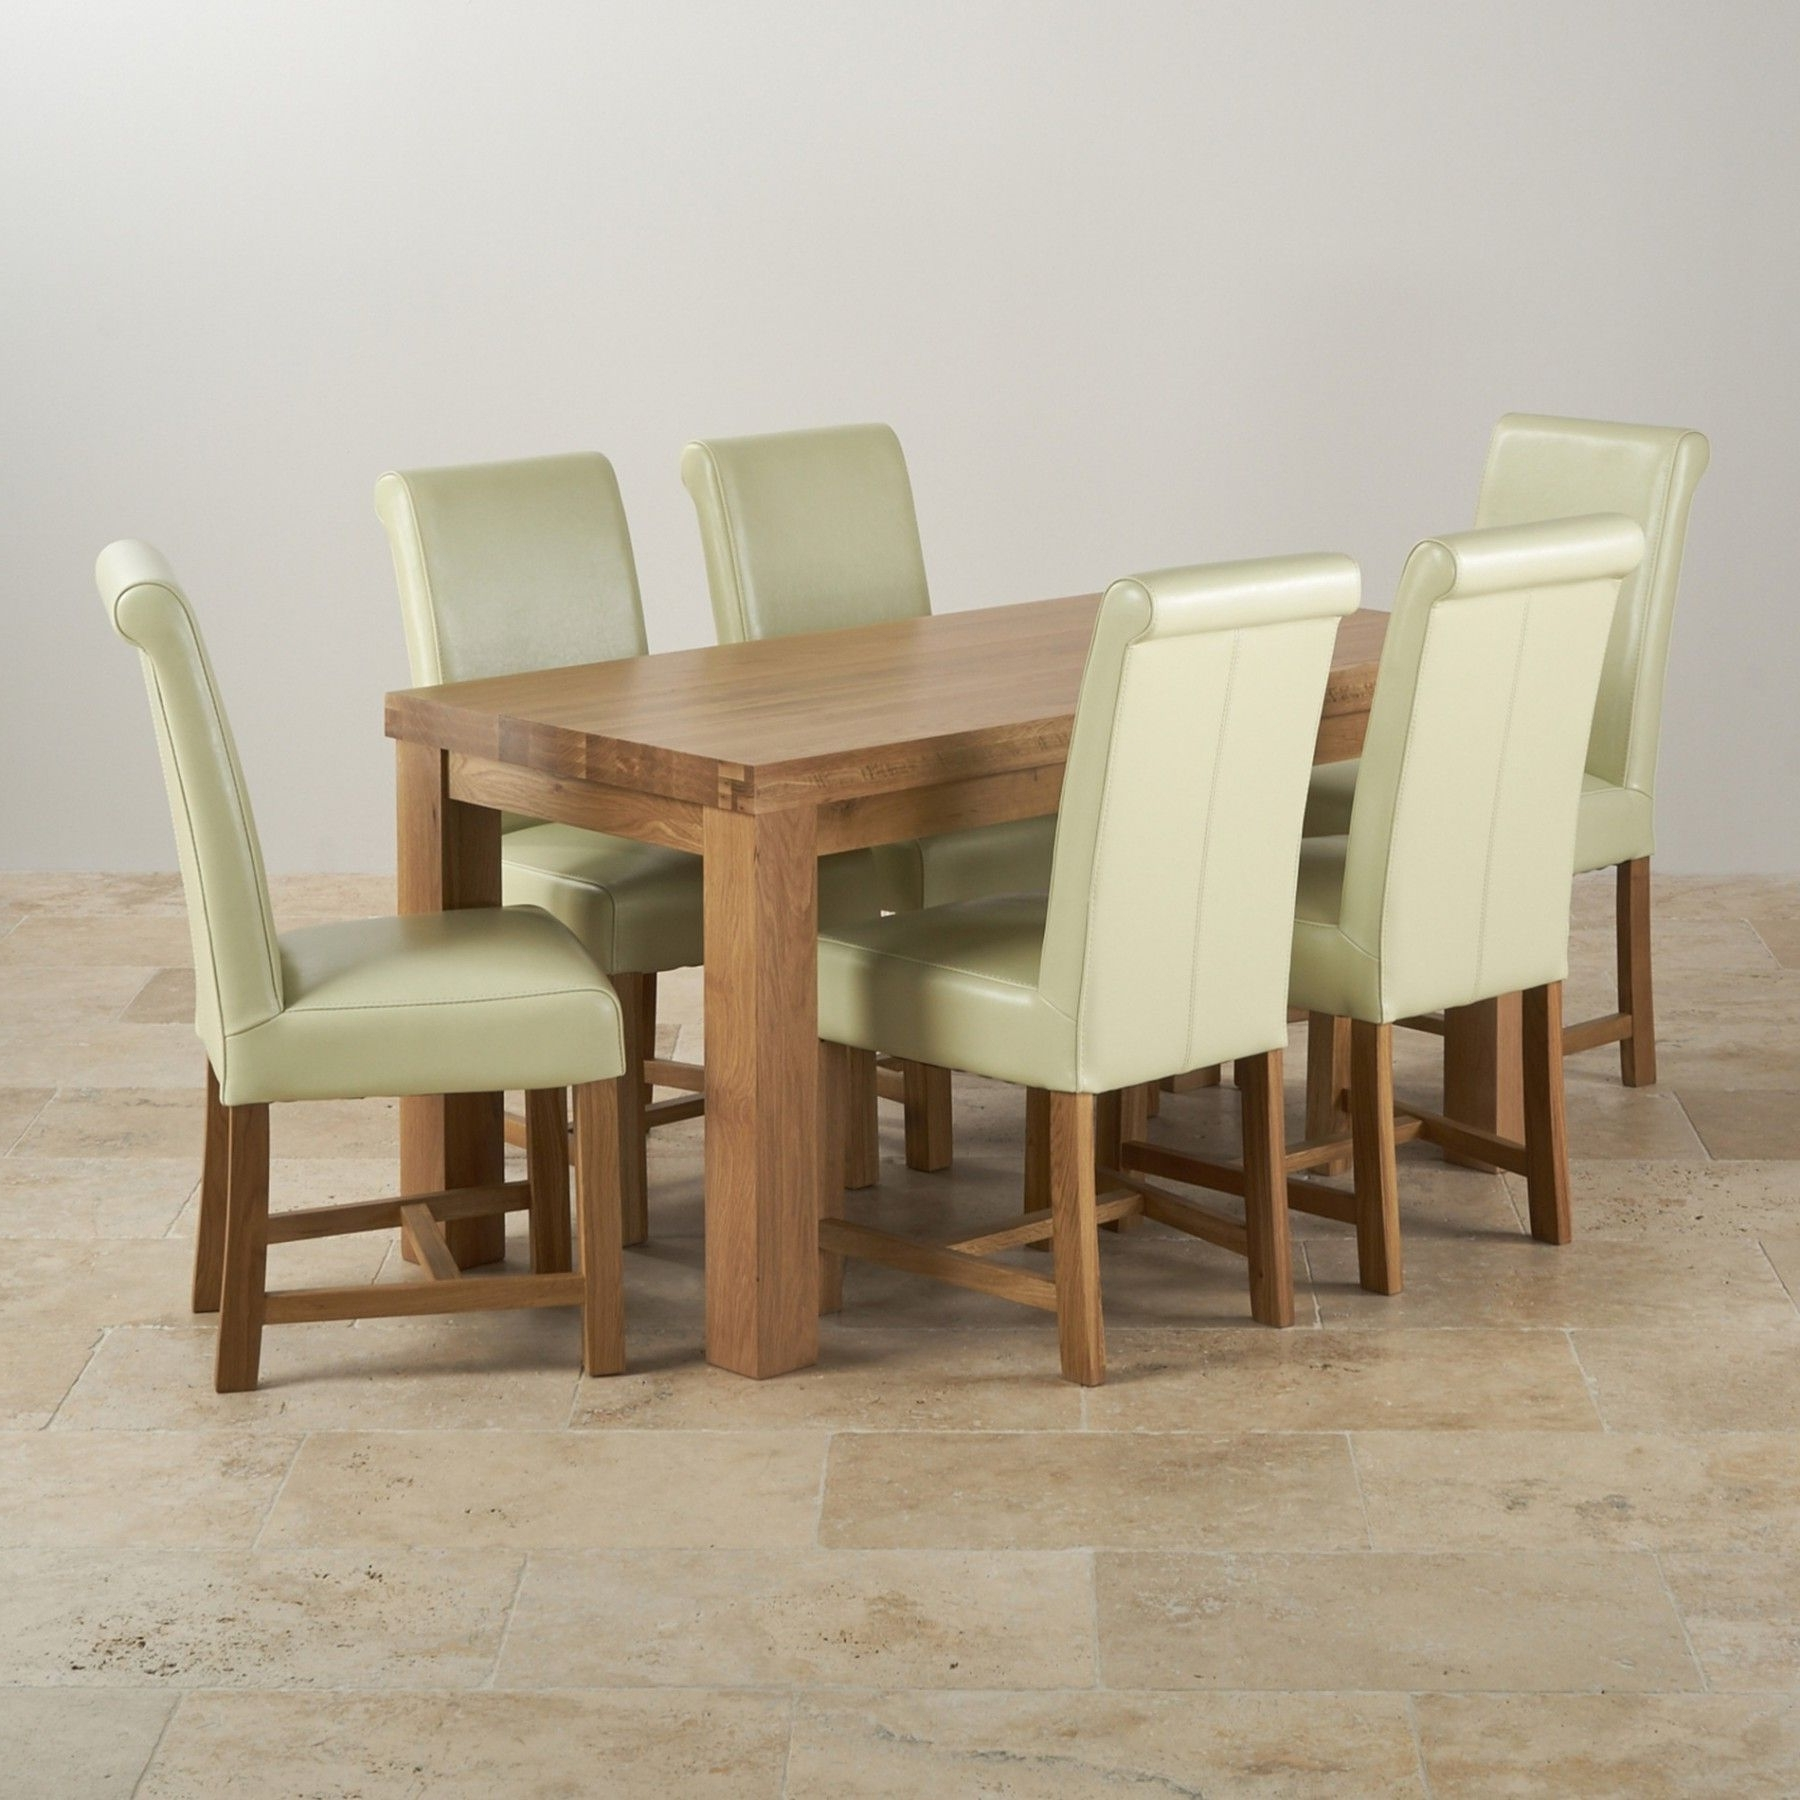 This Modern Dining Set Consists Of A Chunky 5Ft Dining Table And 6 With Regard To Most Popular Oak Dining Tables And Leather Chairs (View 24 of 25)